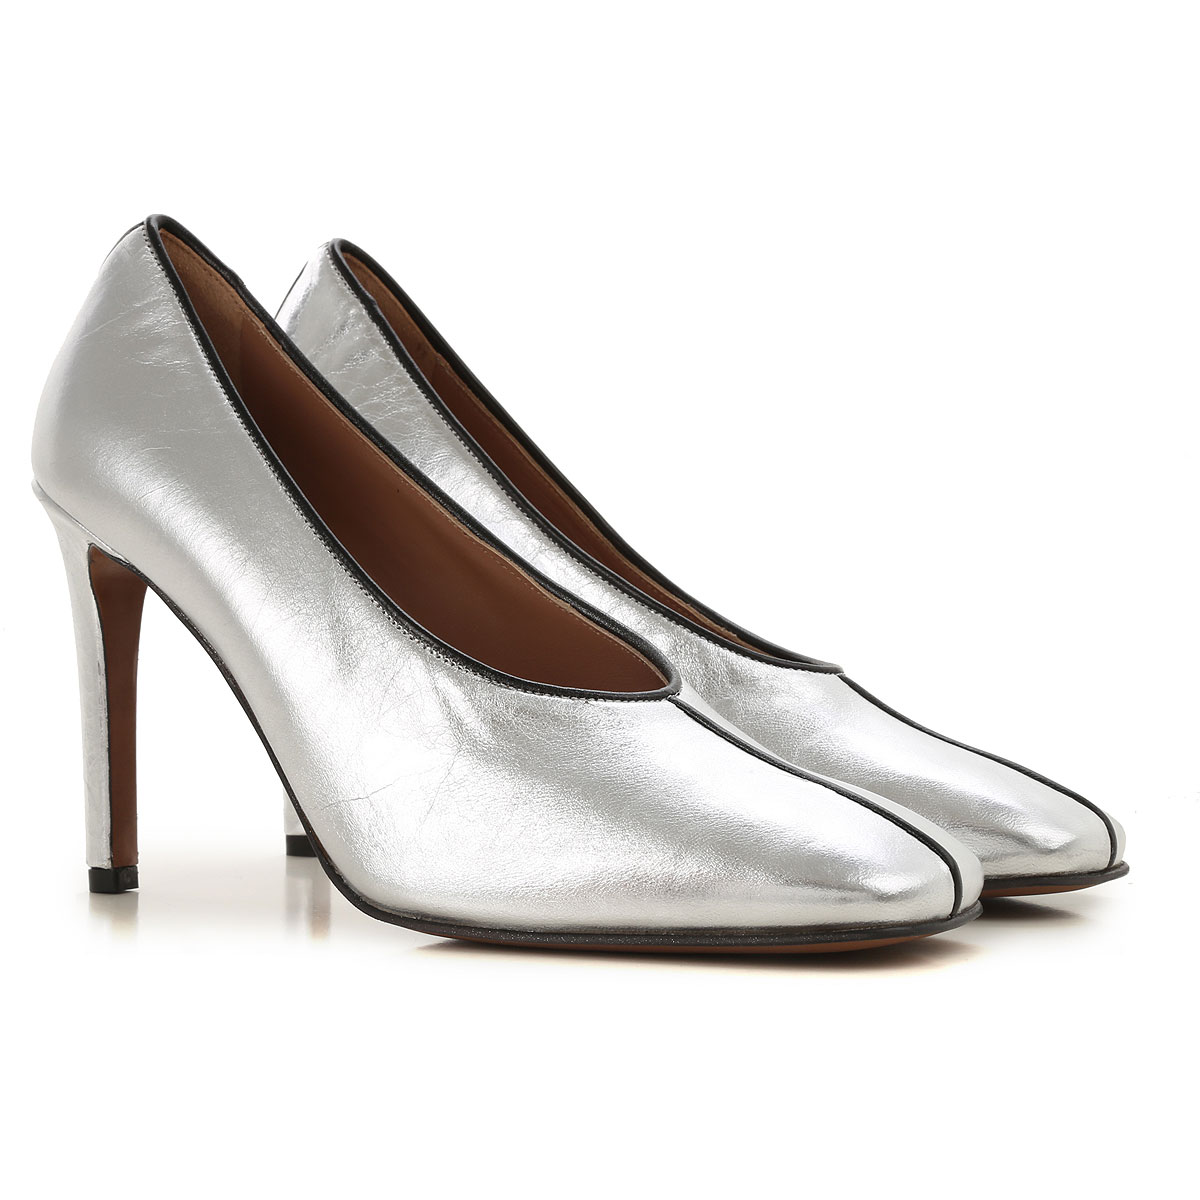 Lautre Chose Pumps & High Heels for Women On Sale in Outlet, Silver, Leather, 2019, 10 6 6.5 7 8